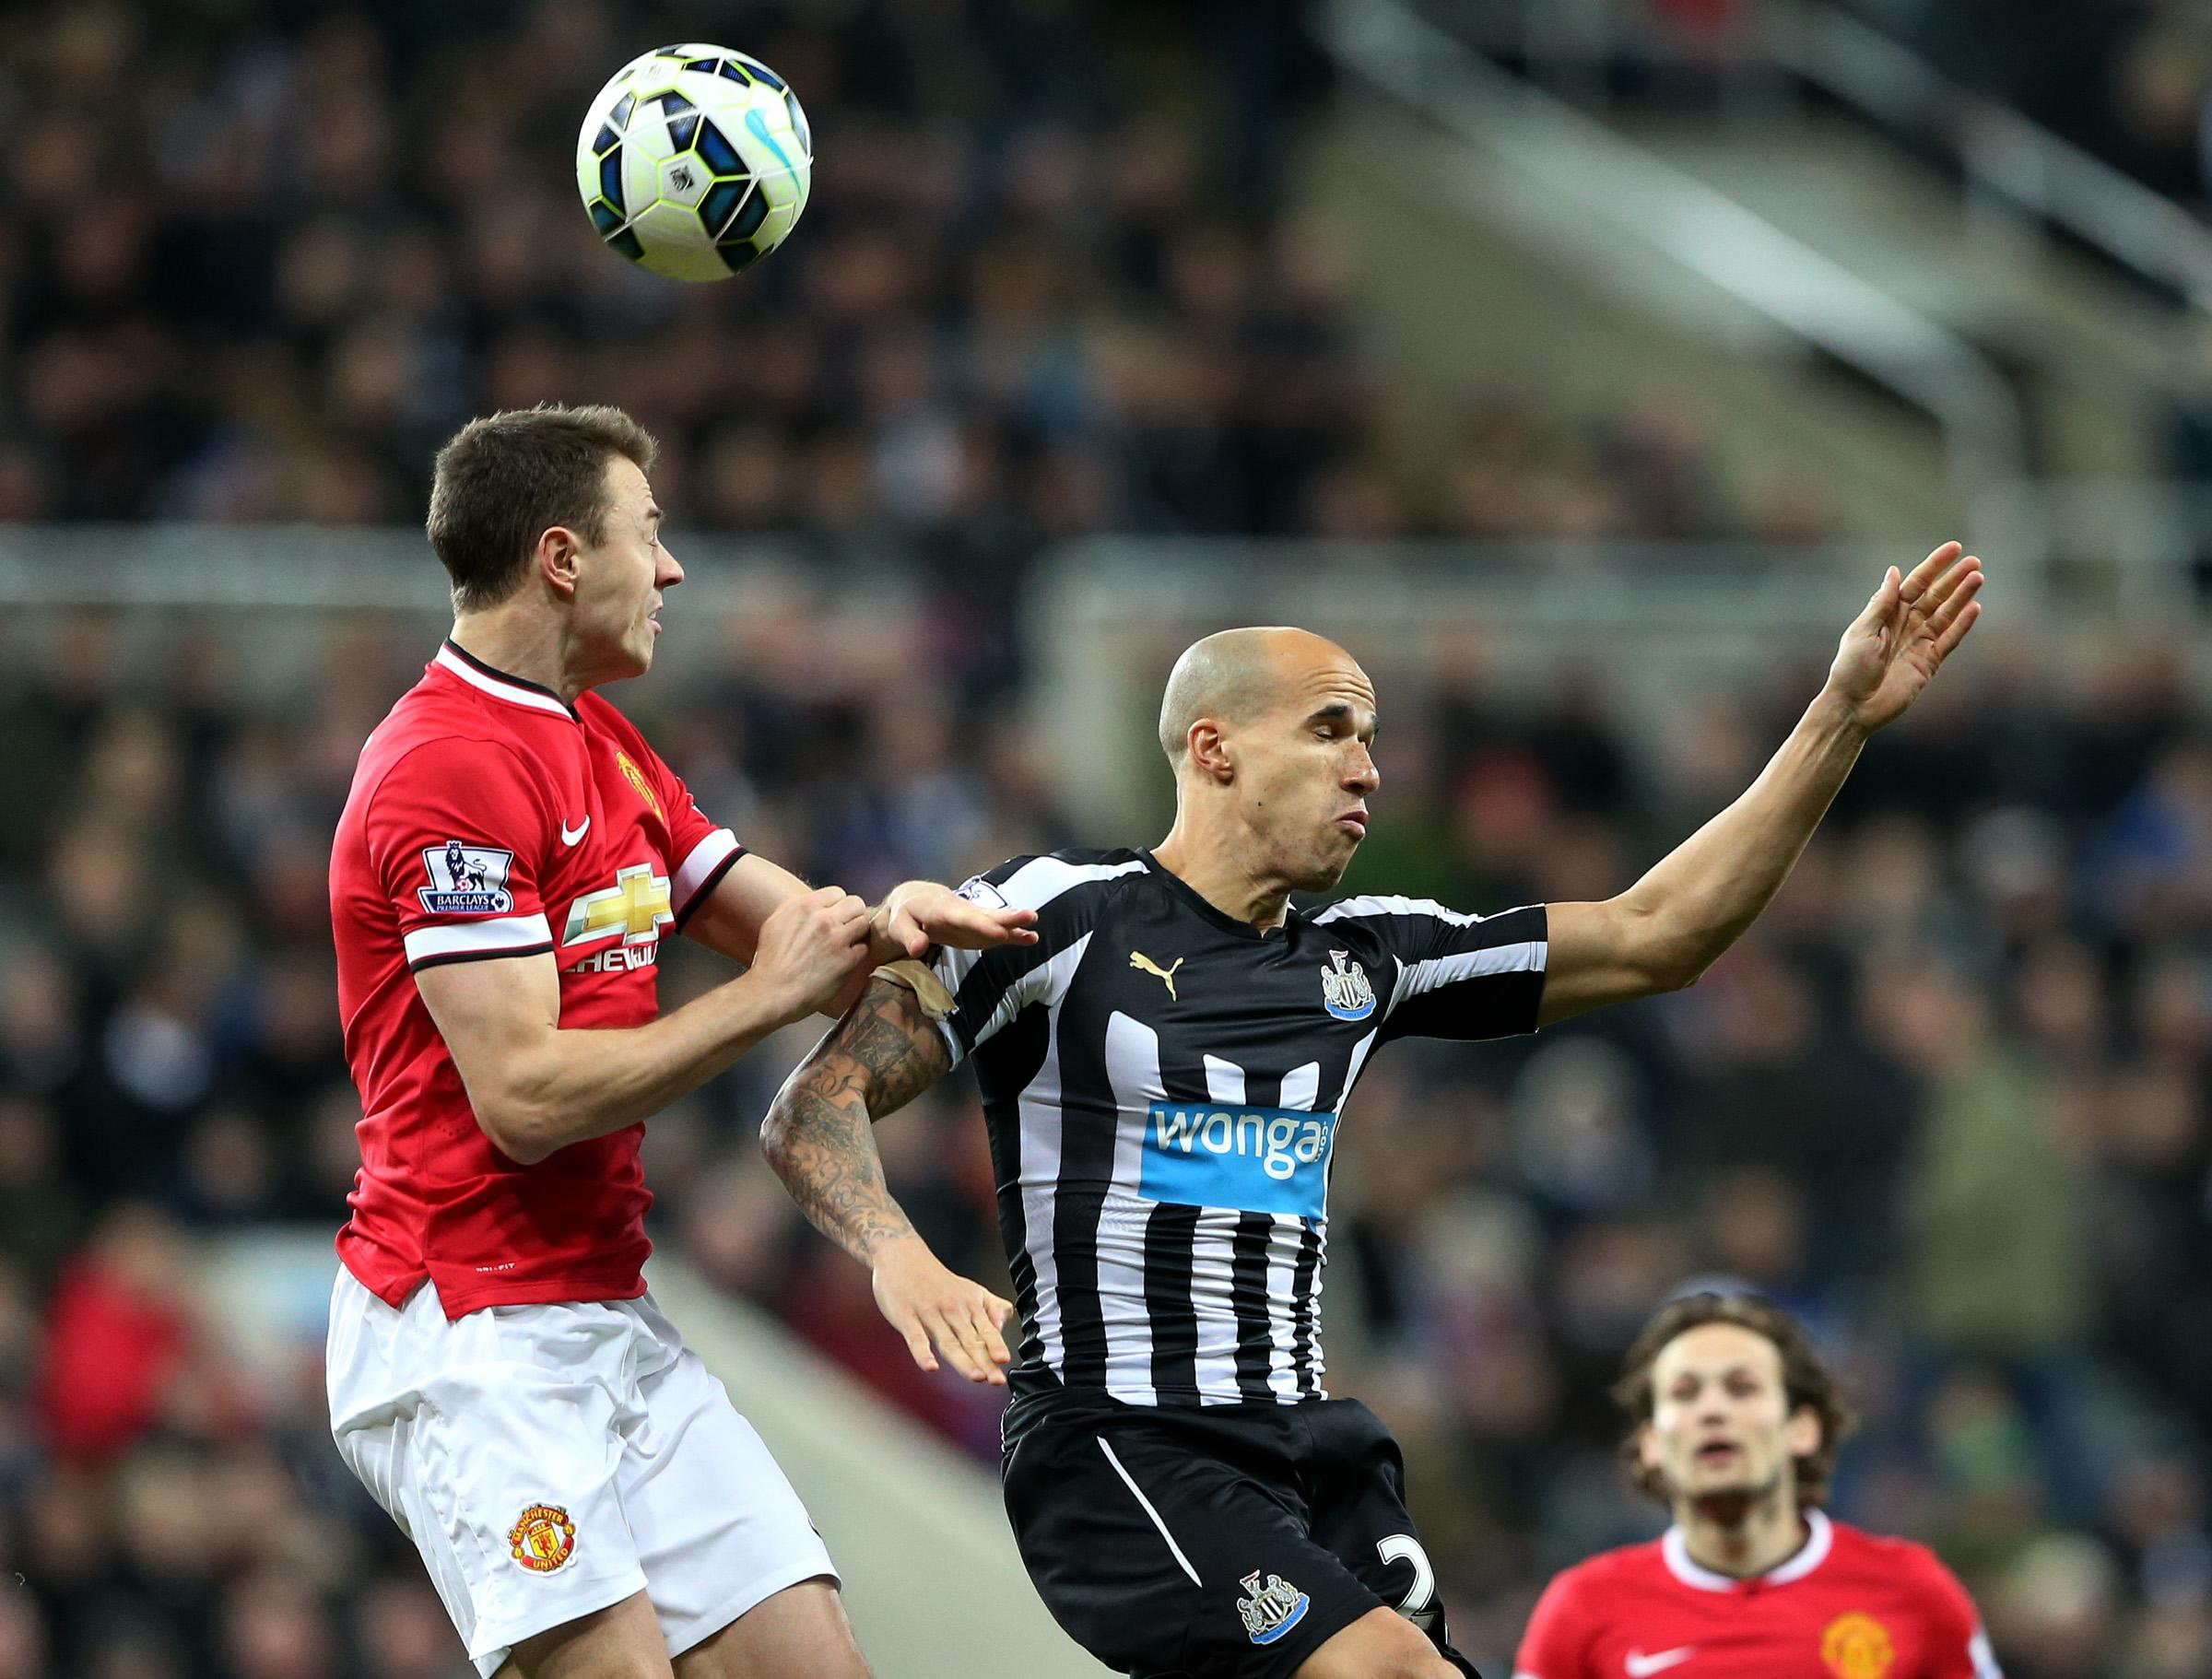 Evans issues denial, Cisse apology after spitting incident